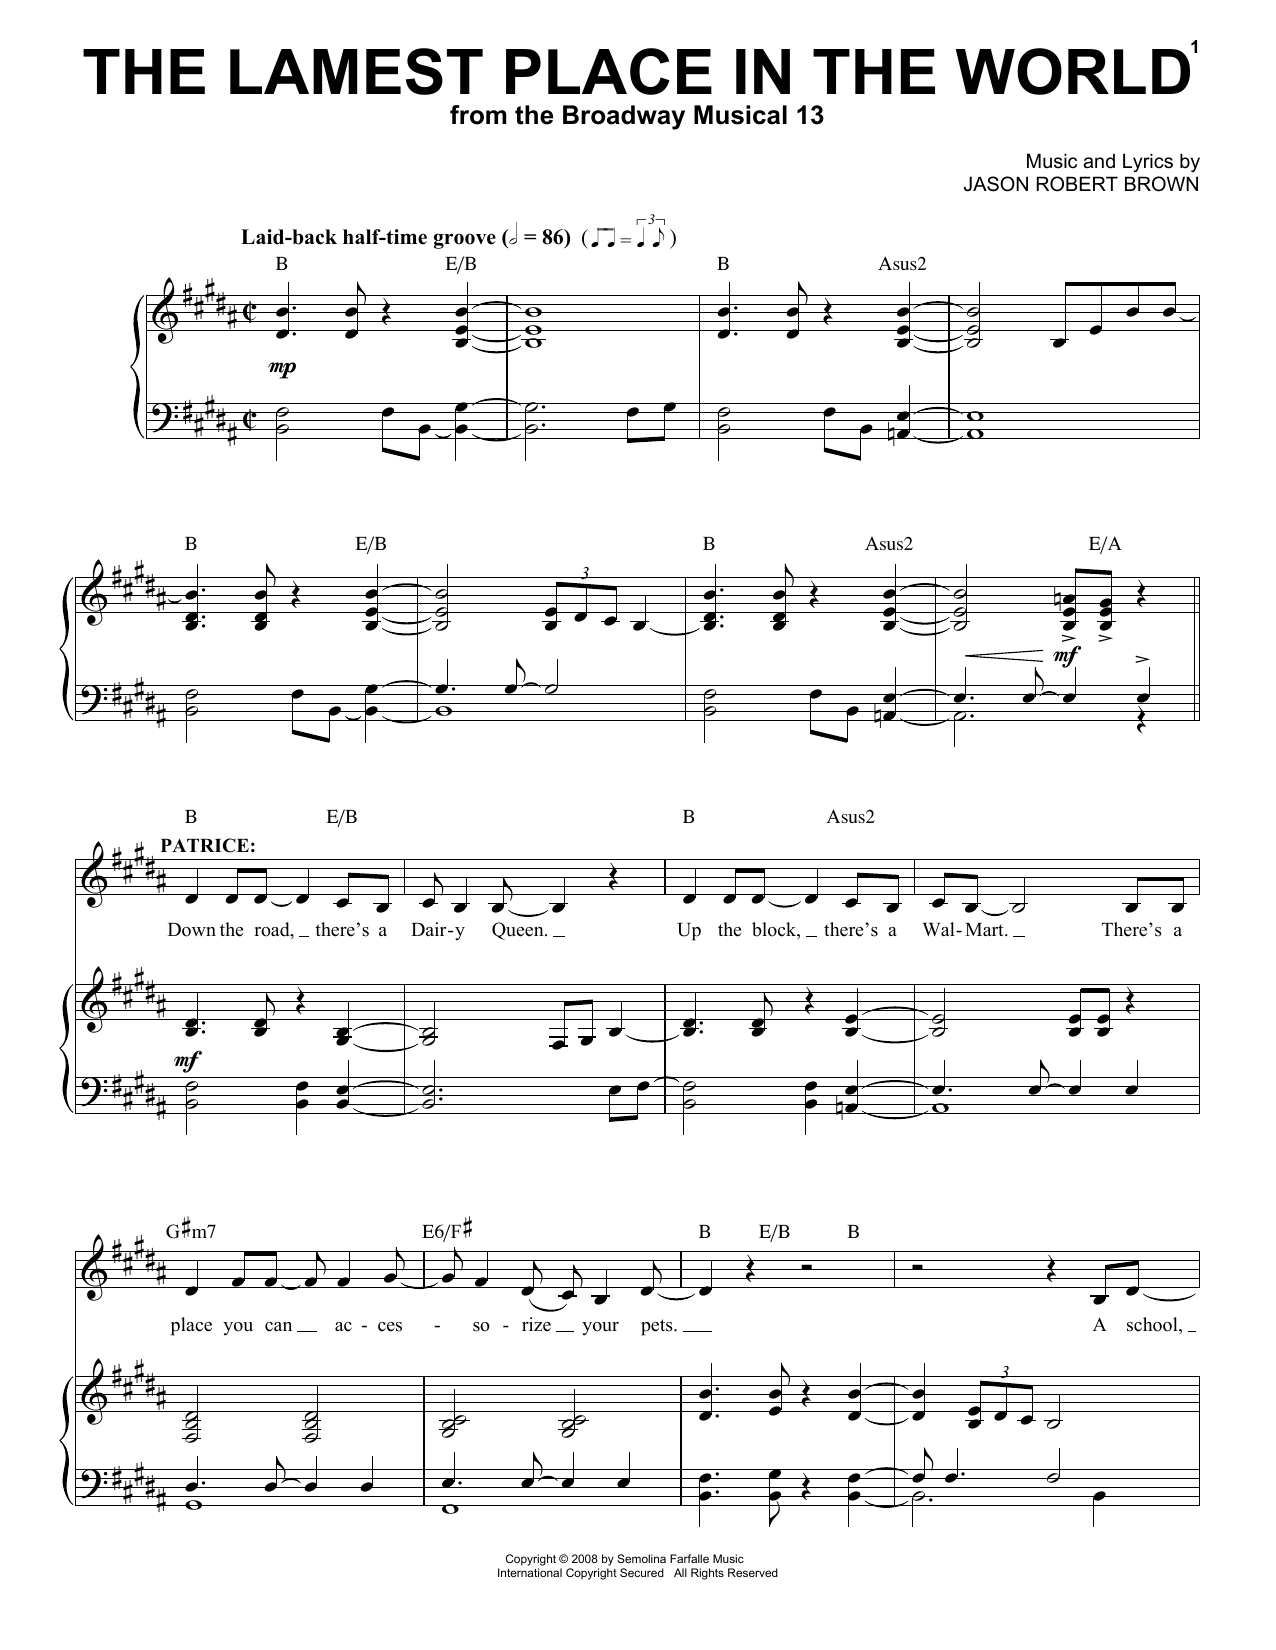 The Lamest Place In The World sheet music for voice and piano by Jason Robert Brown